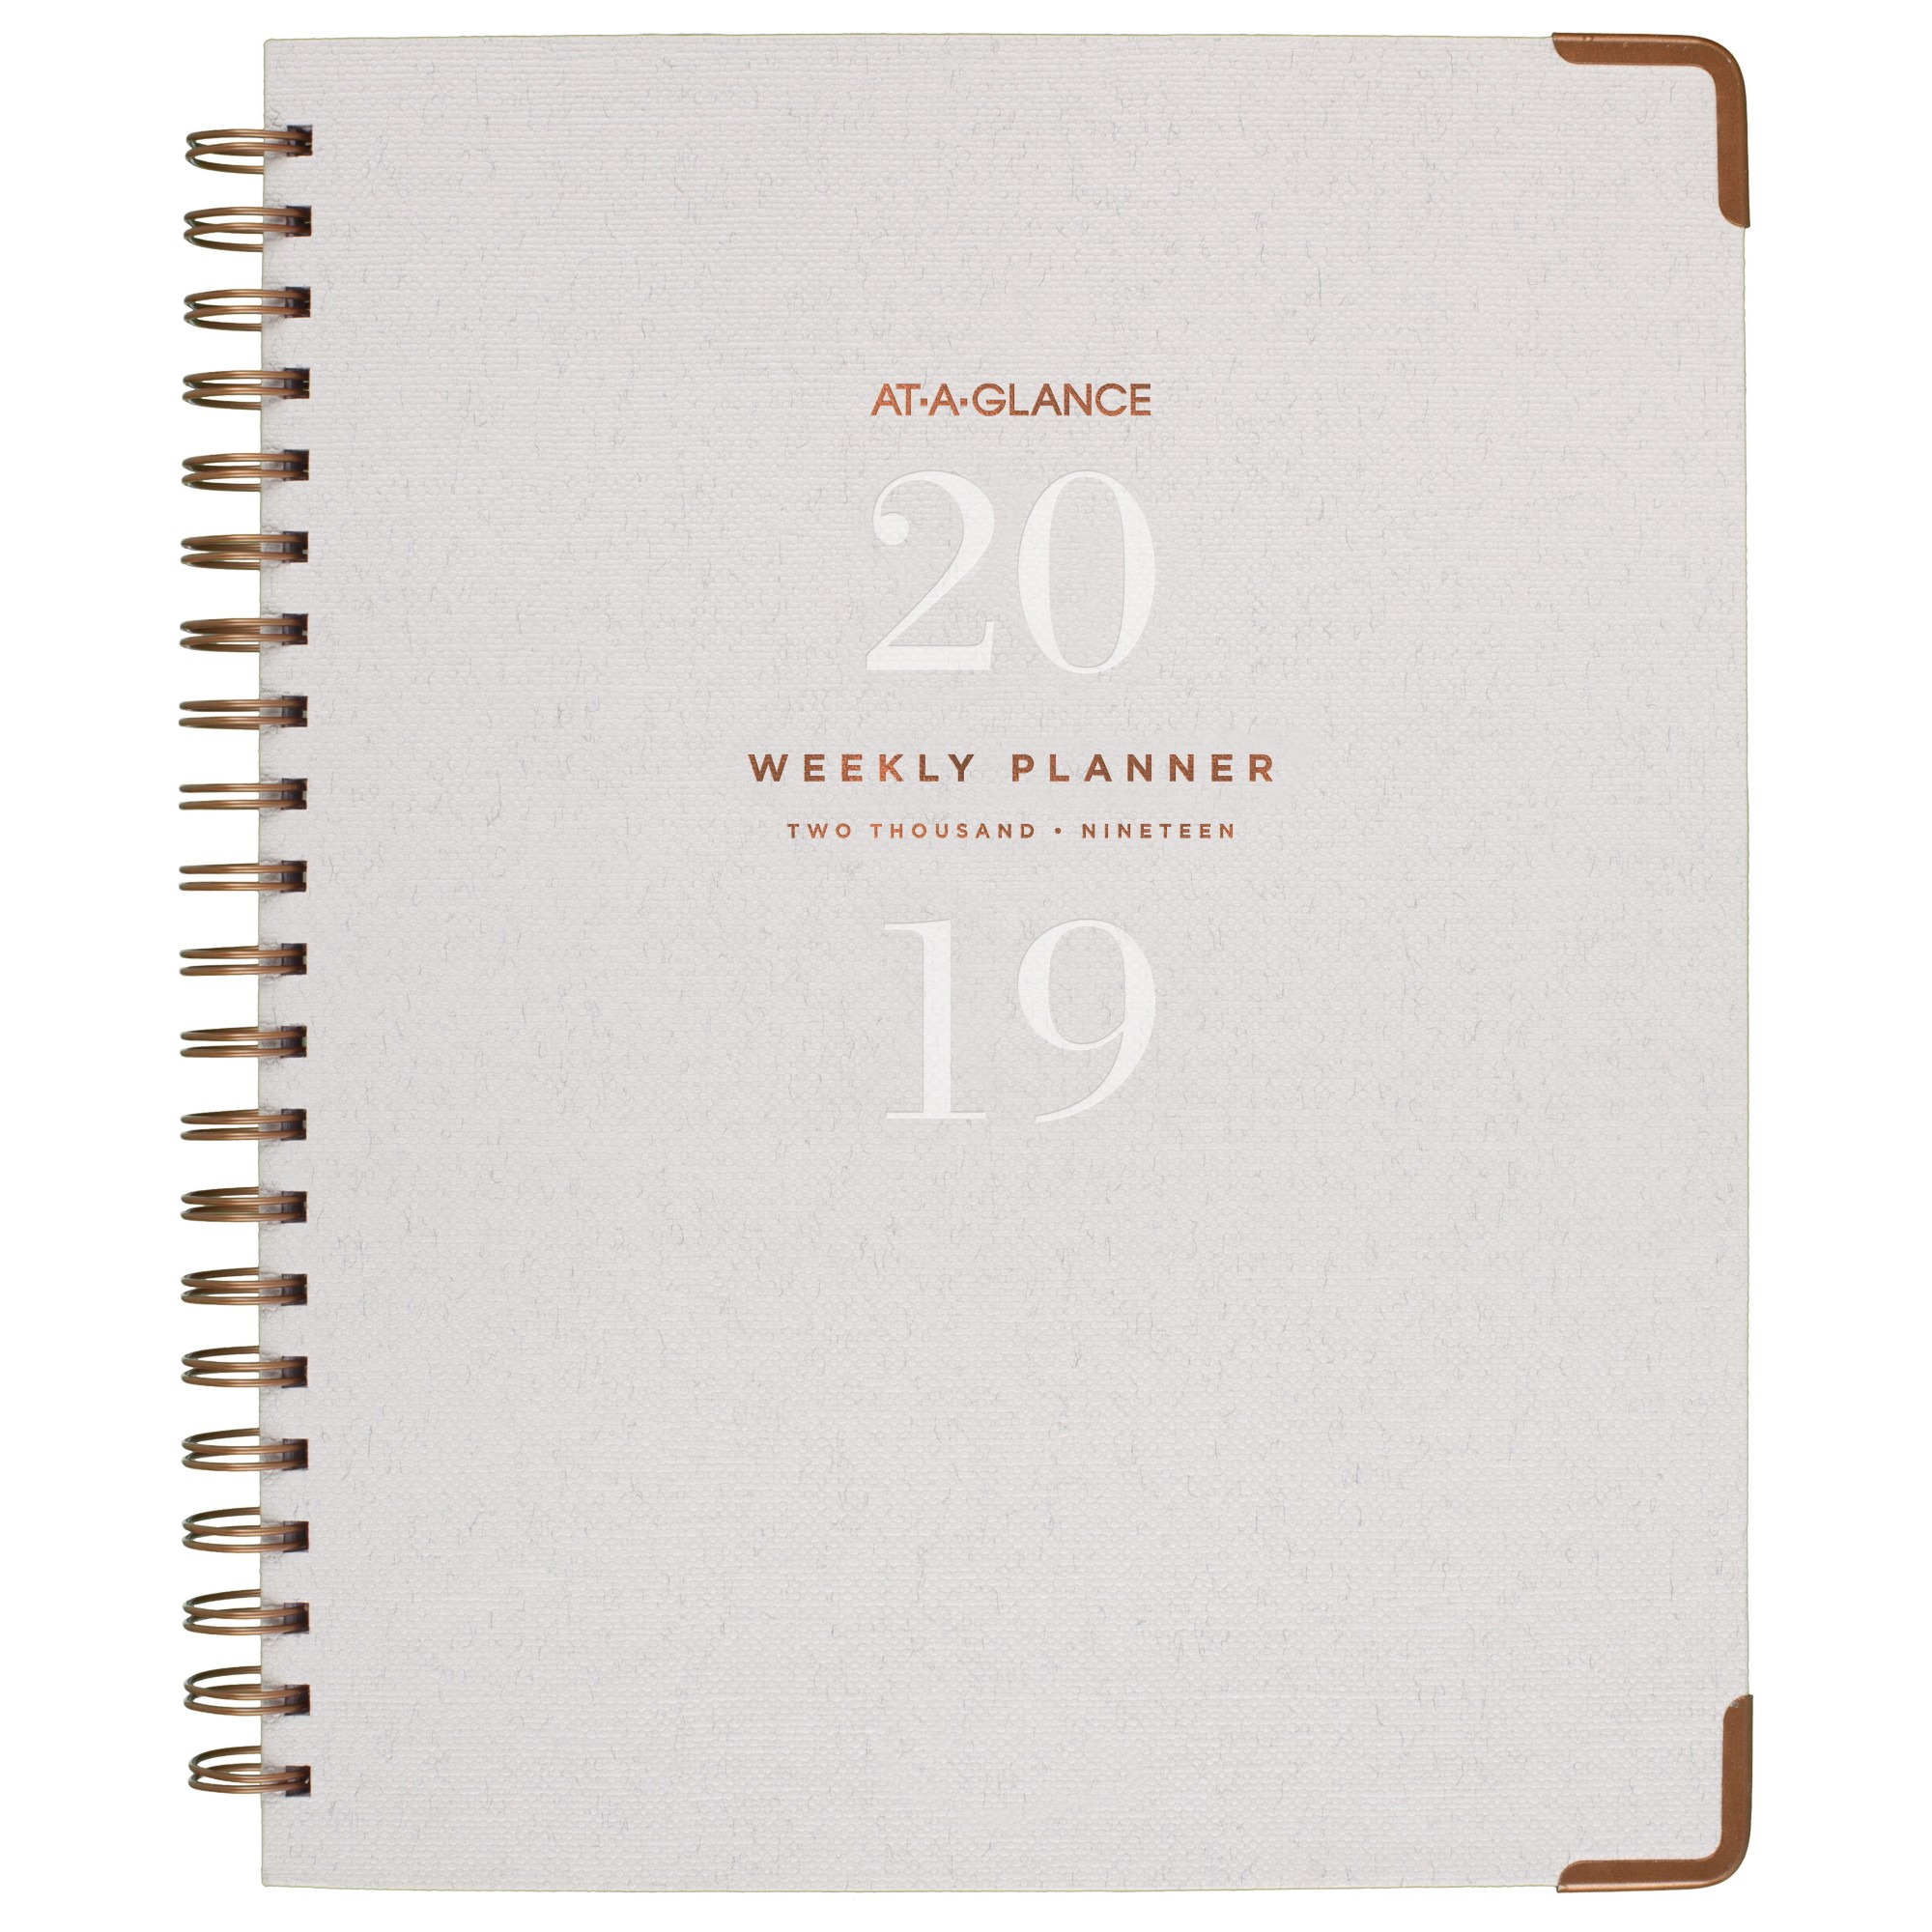 AT-A-GLANCE PLANNER WEEKLY/MONTHLY 2019 AT-A-GLANCE SIGNATURE A4 LINEN GREY ( EACH )